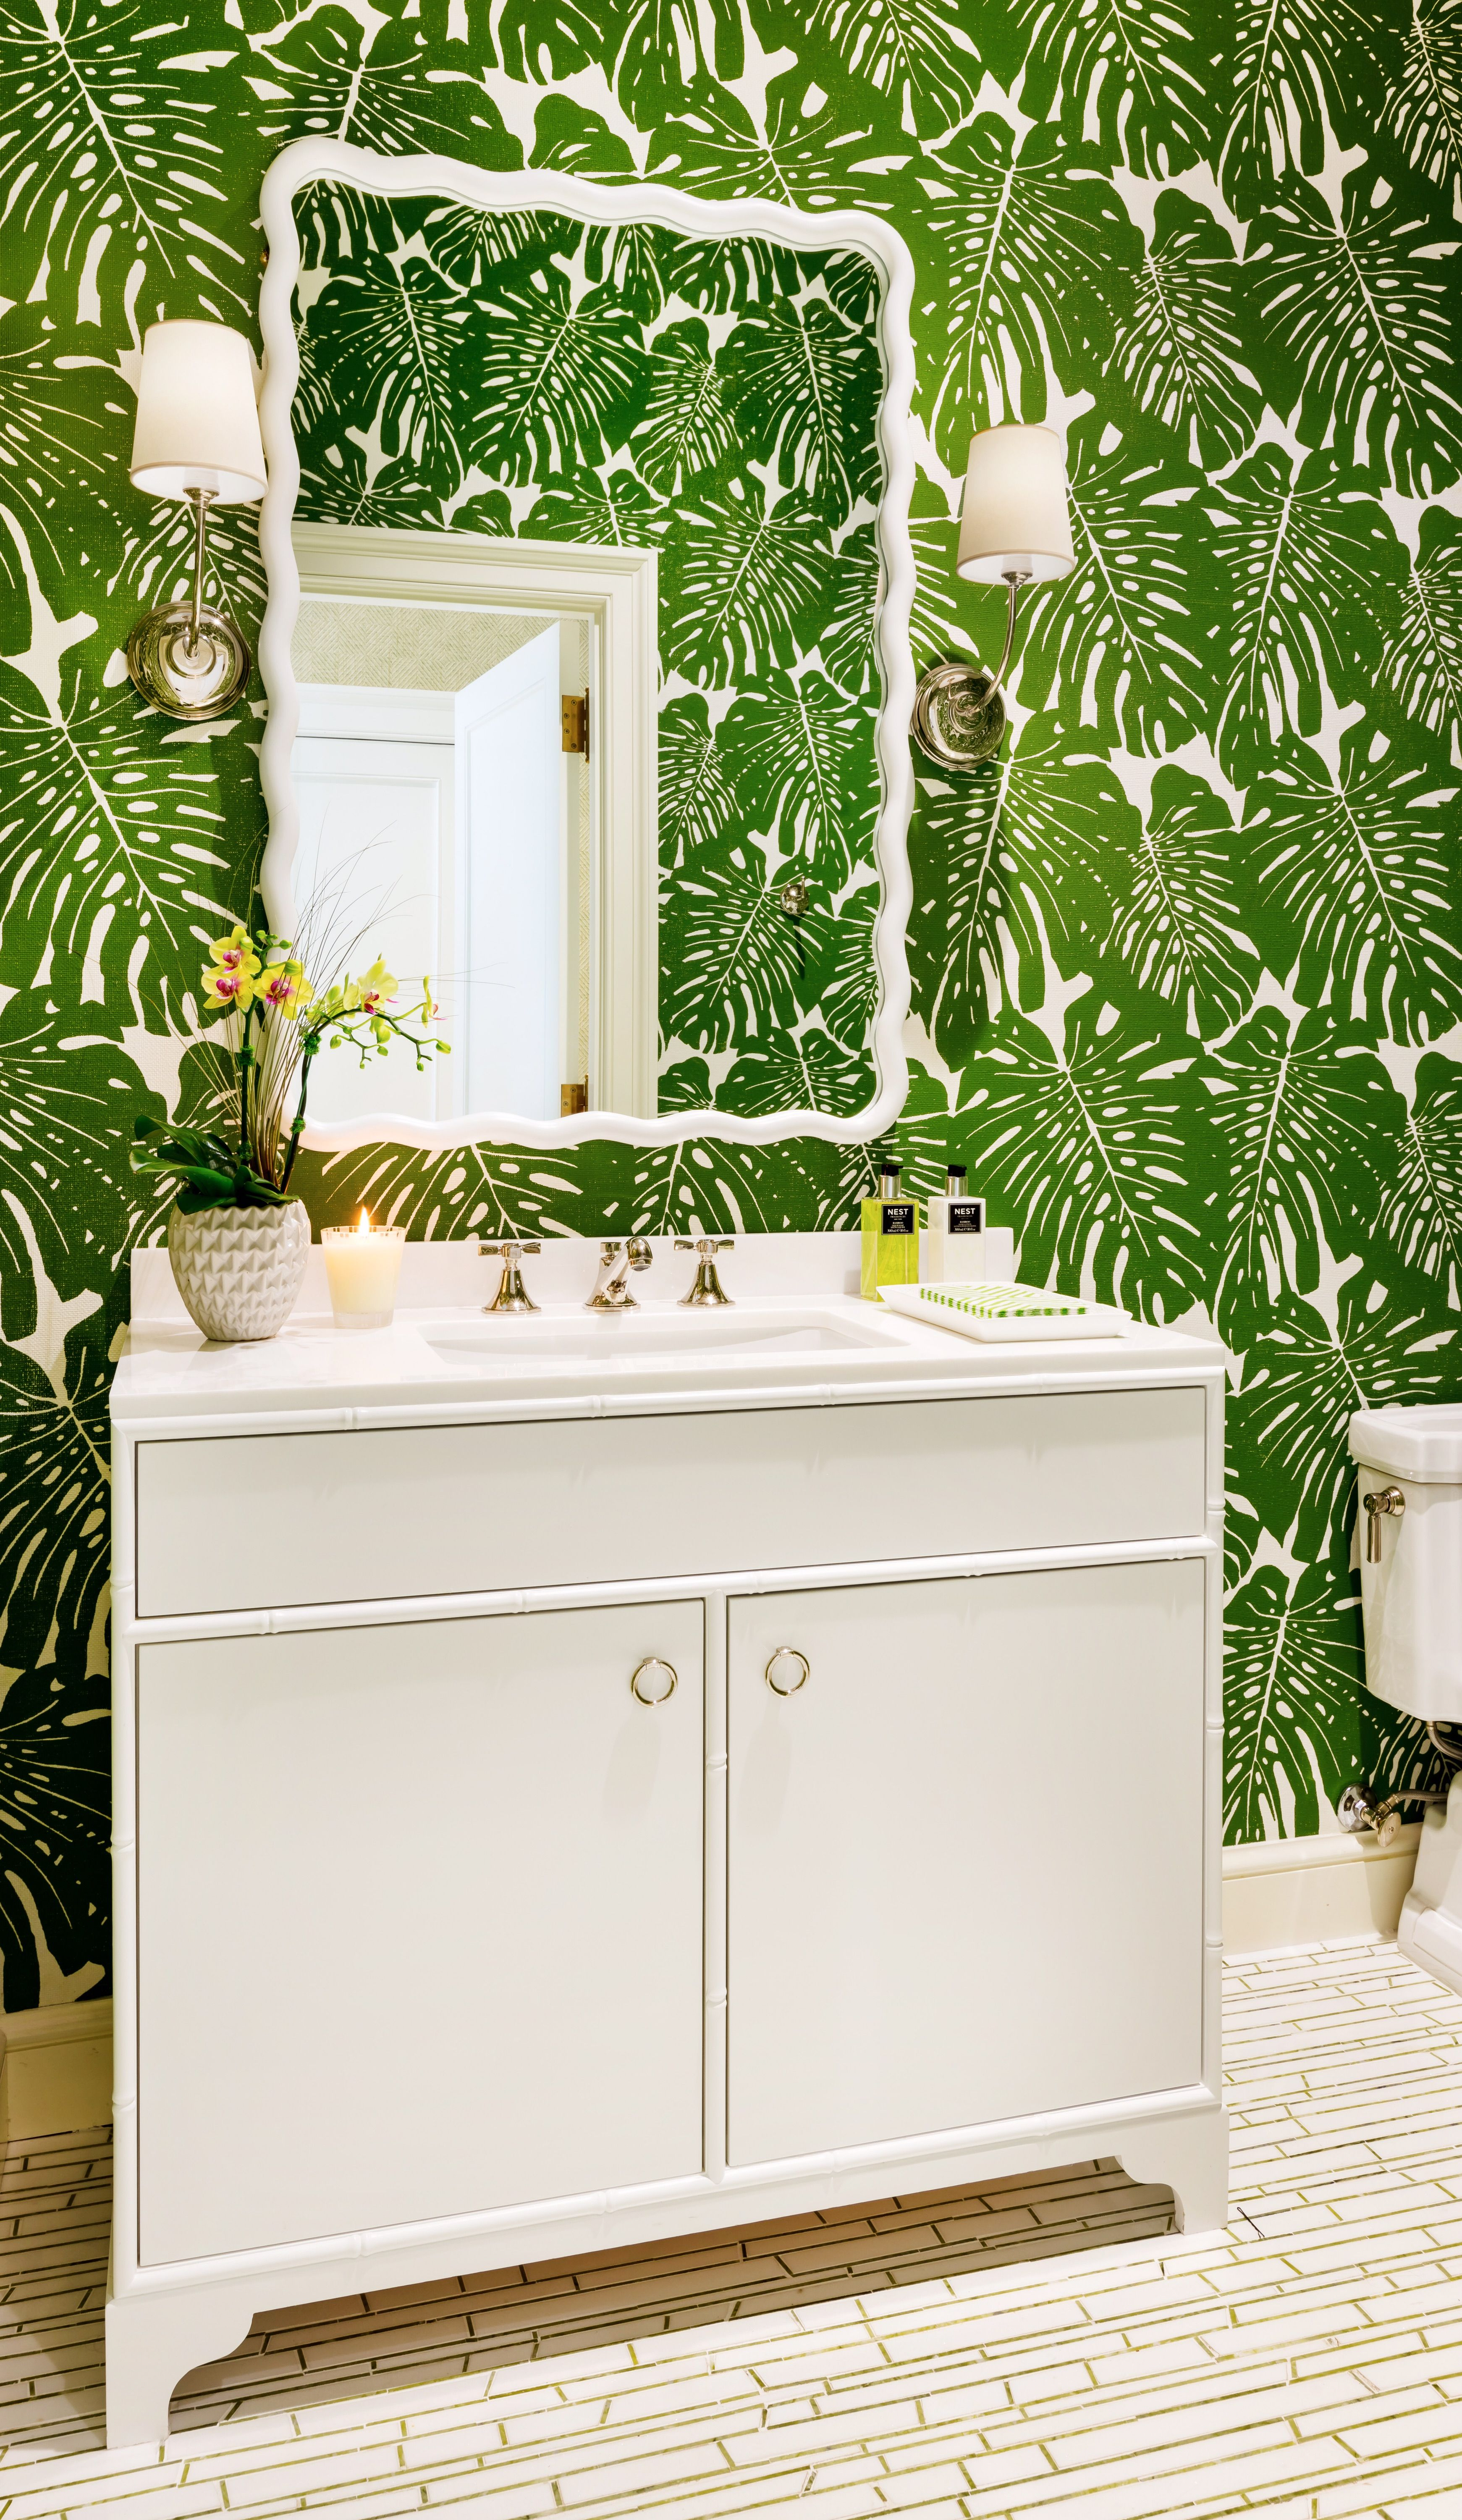 Powder Room By Amy Kartheiser Design: Pin By HIVE Collective On BATH